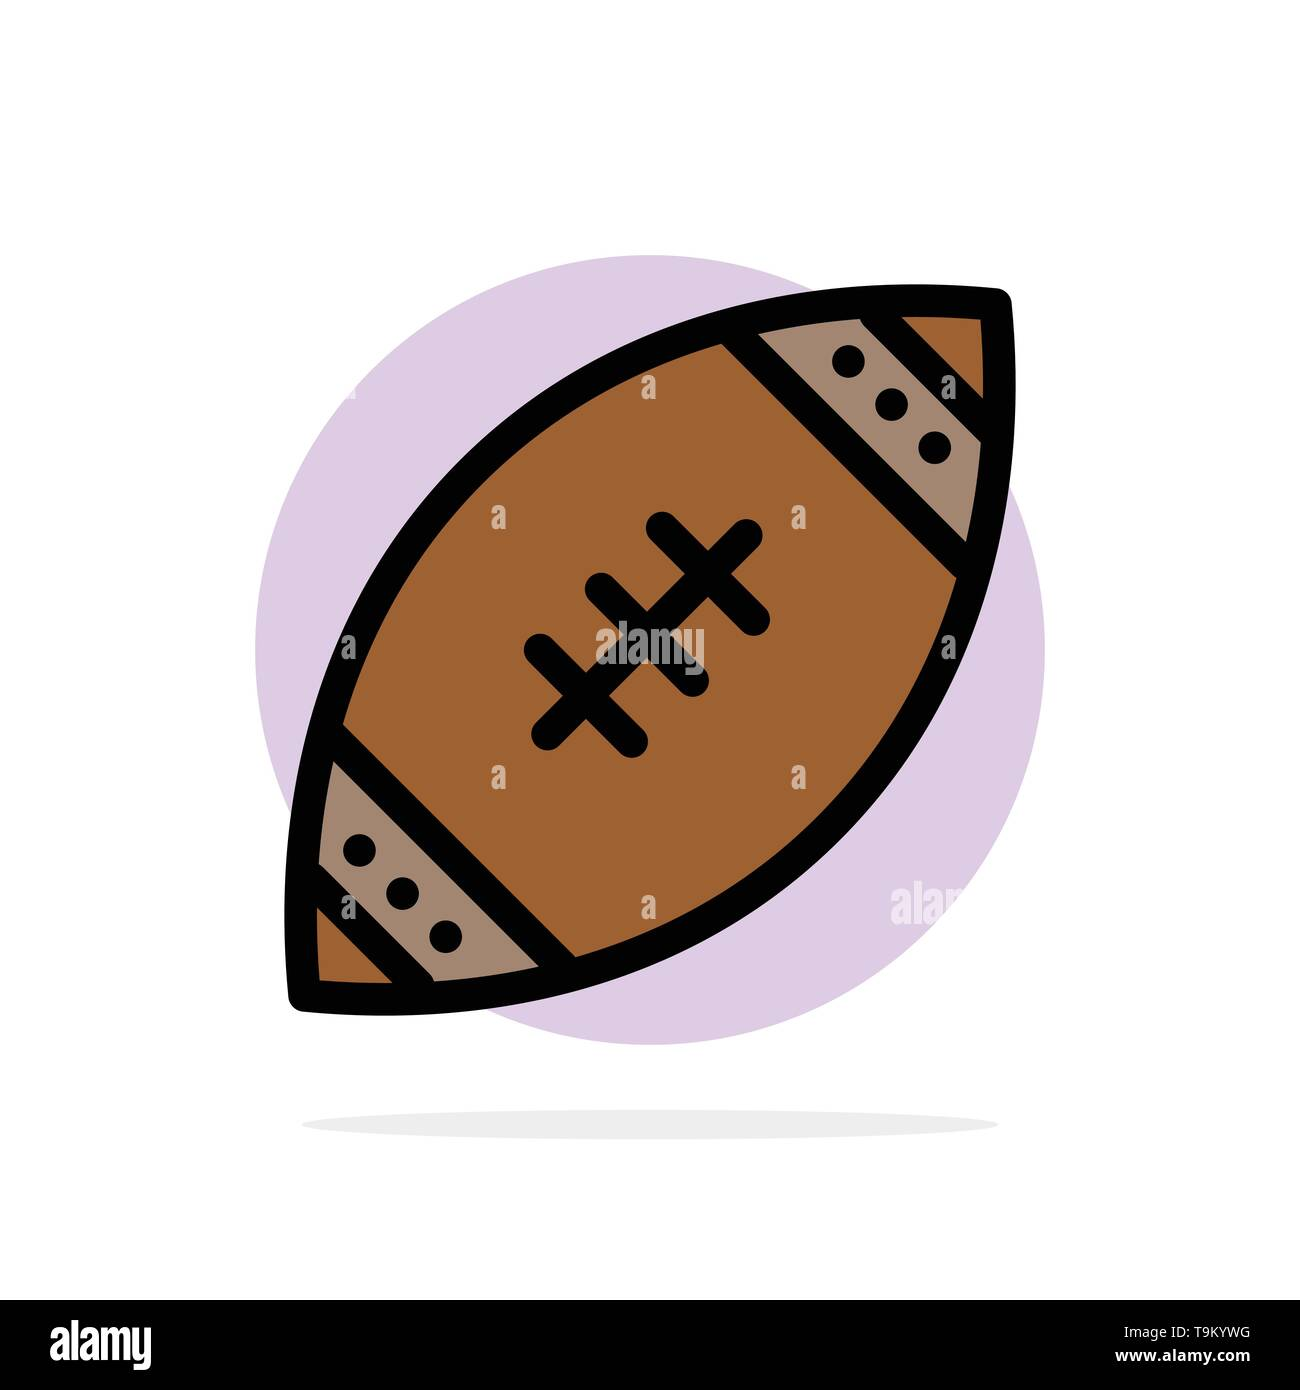 American, Ball, Football, Nfl, Rugby Abstract Circle Background Flat color Icon - Stock Image